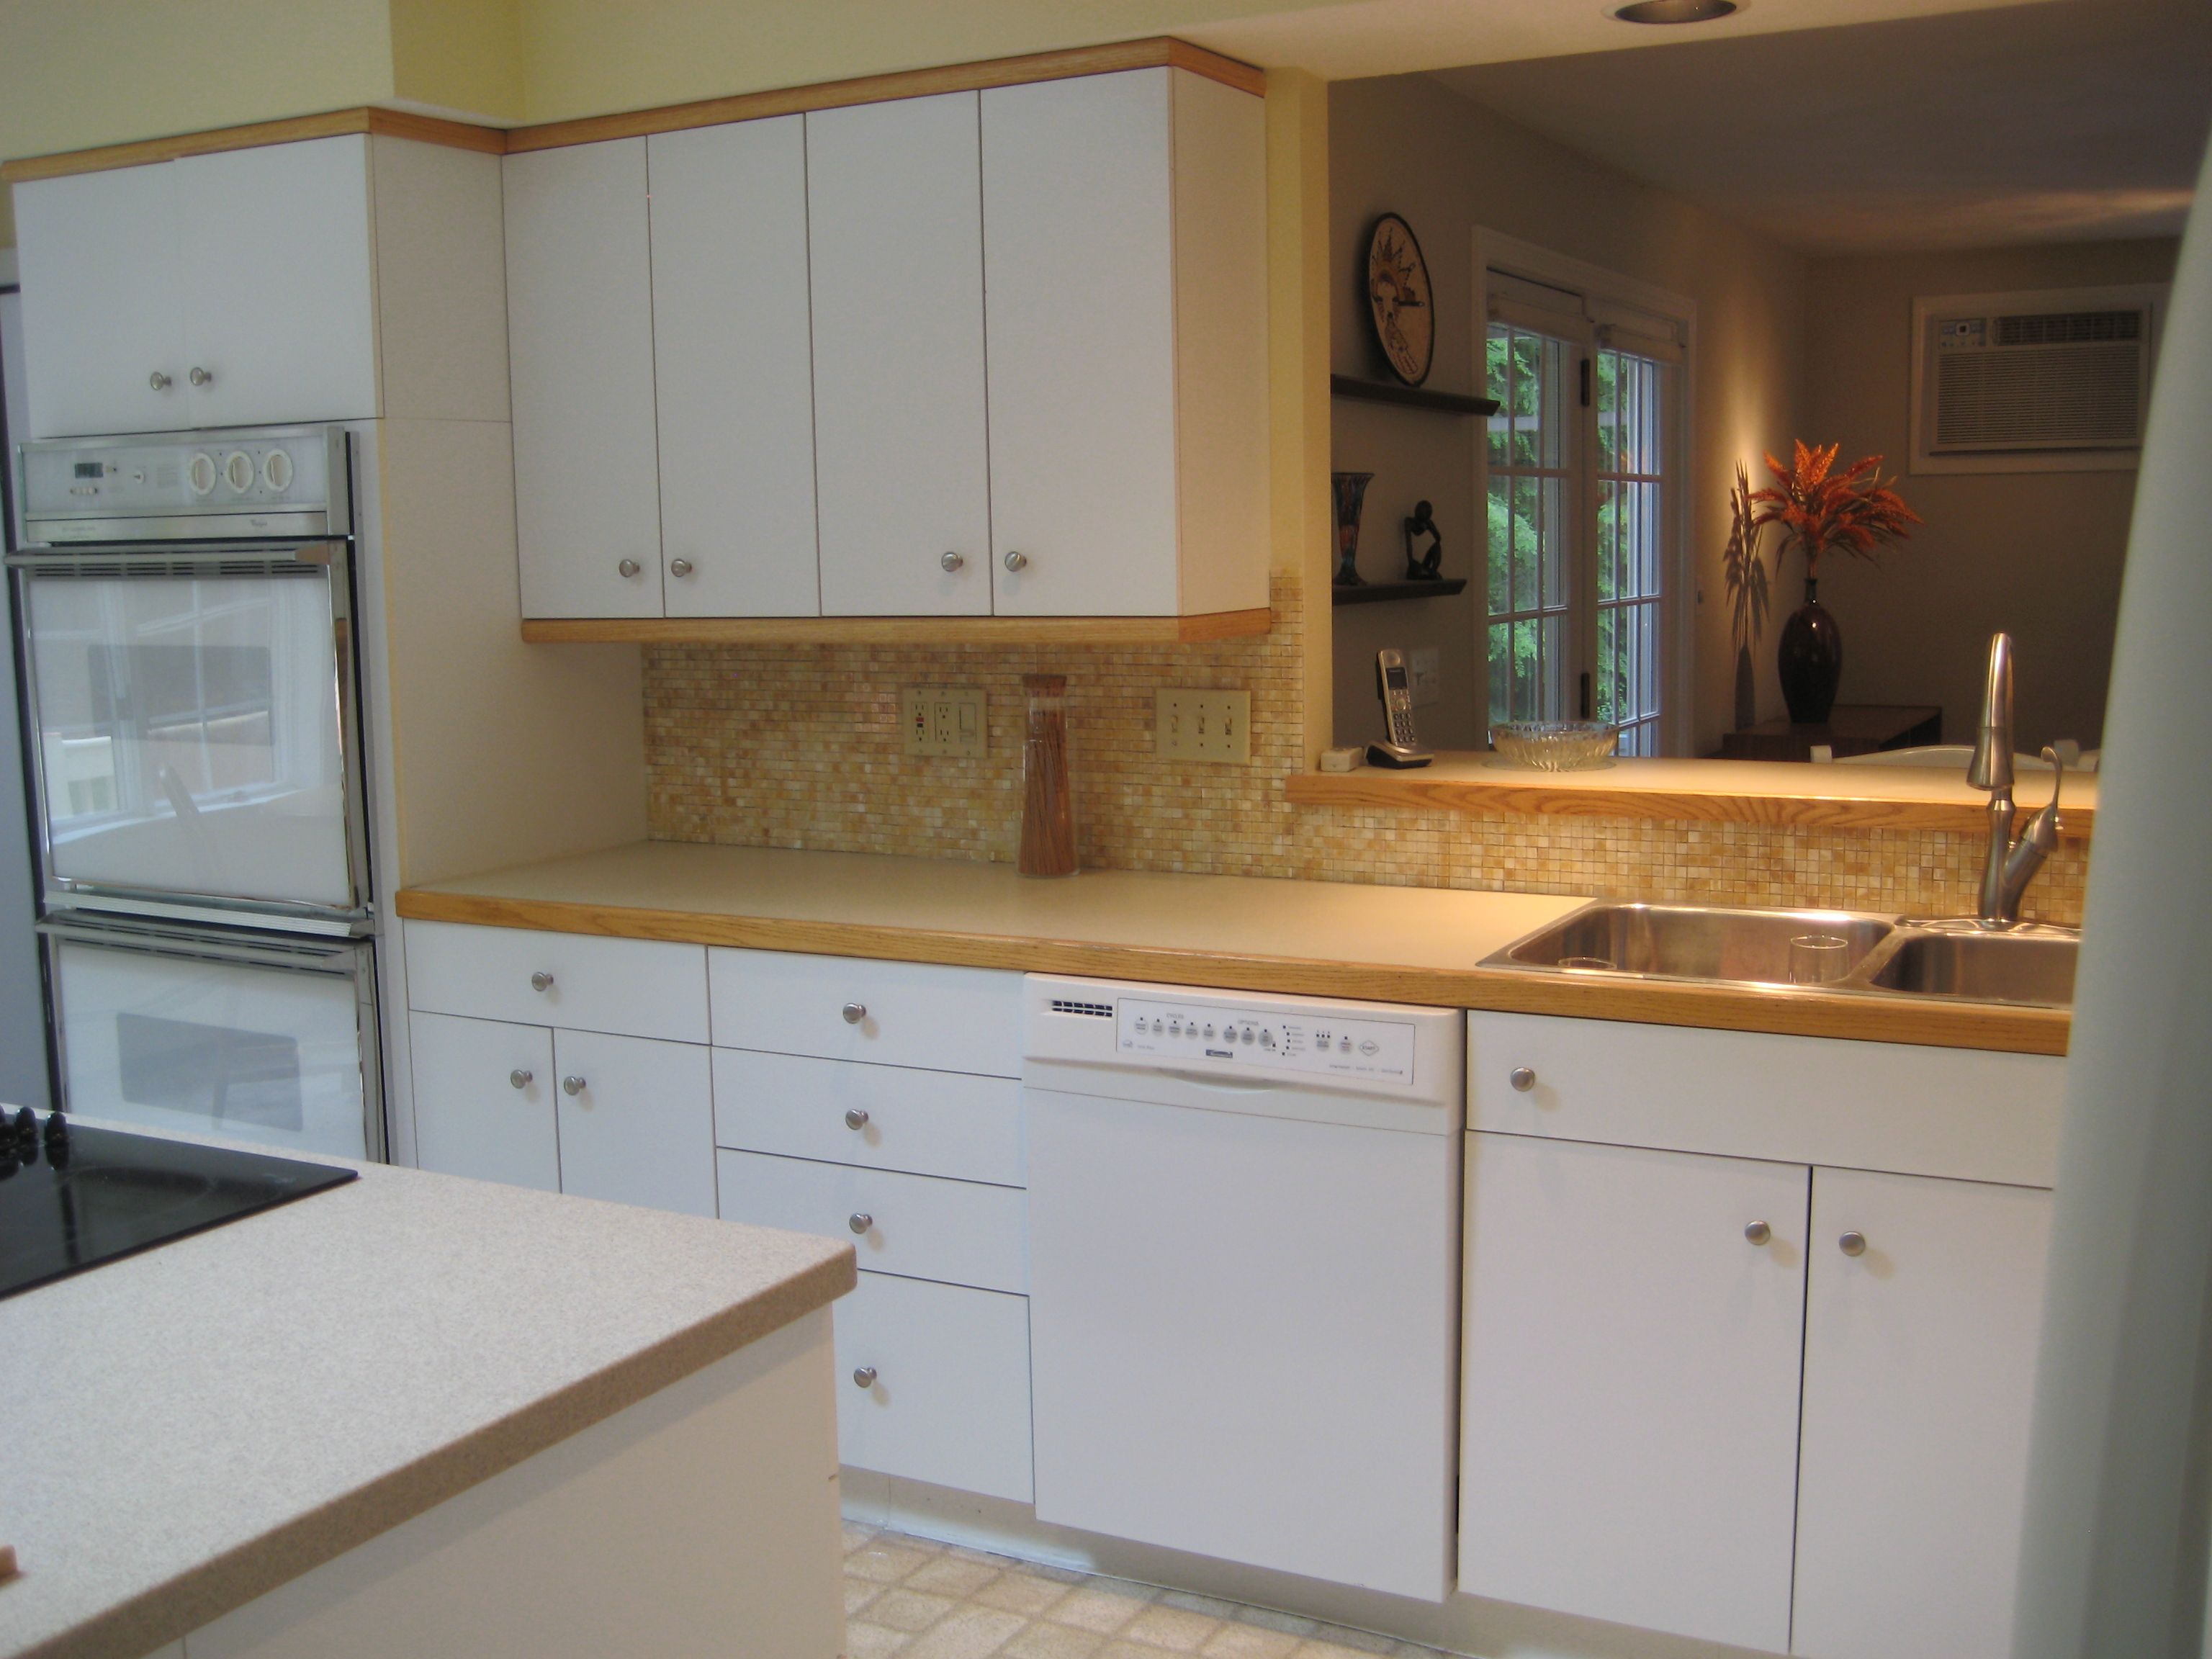 Laminate Kitchen Cabinets With Oak Trim Stylish Home Design Ideas The Benefits Of Having A White